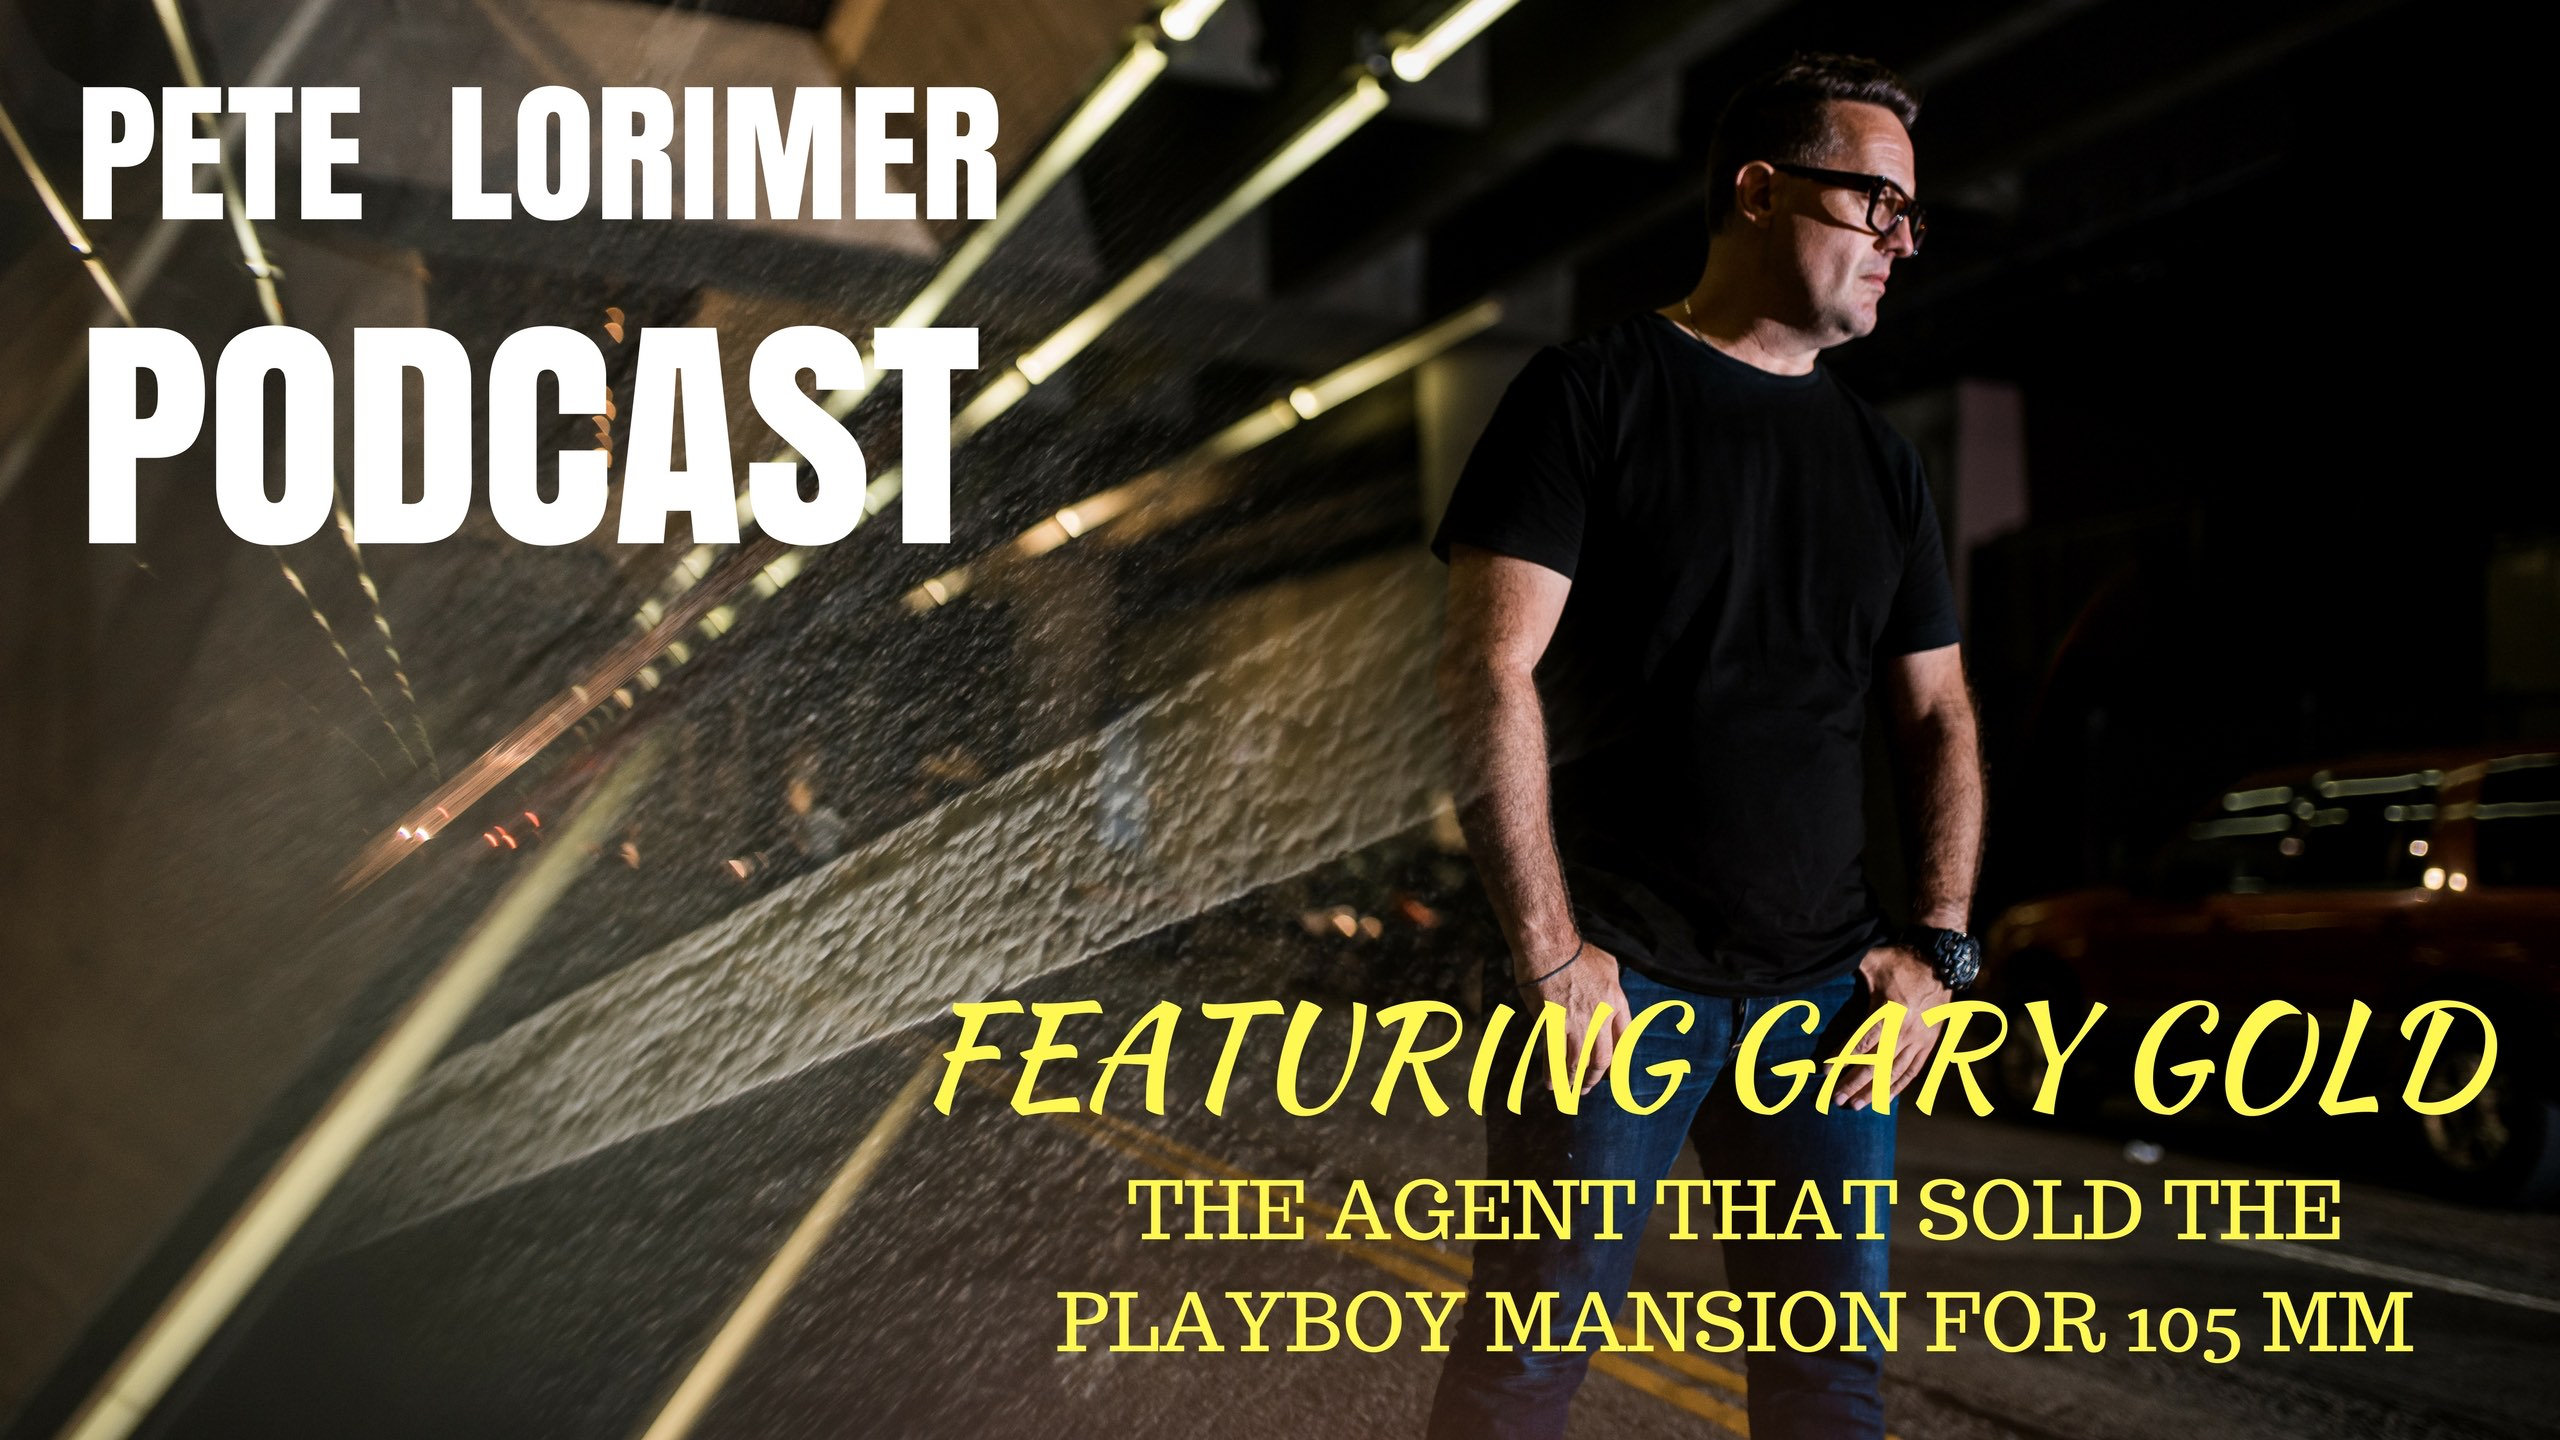 Pete Lorimer Podcast - Featuring Gary Gold : The Agent that Sold the Playboy Mansion for $105MM